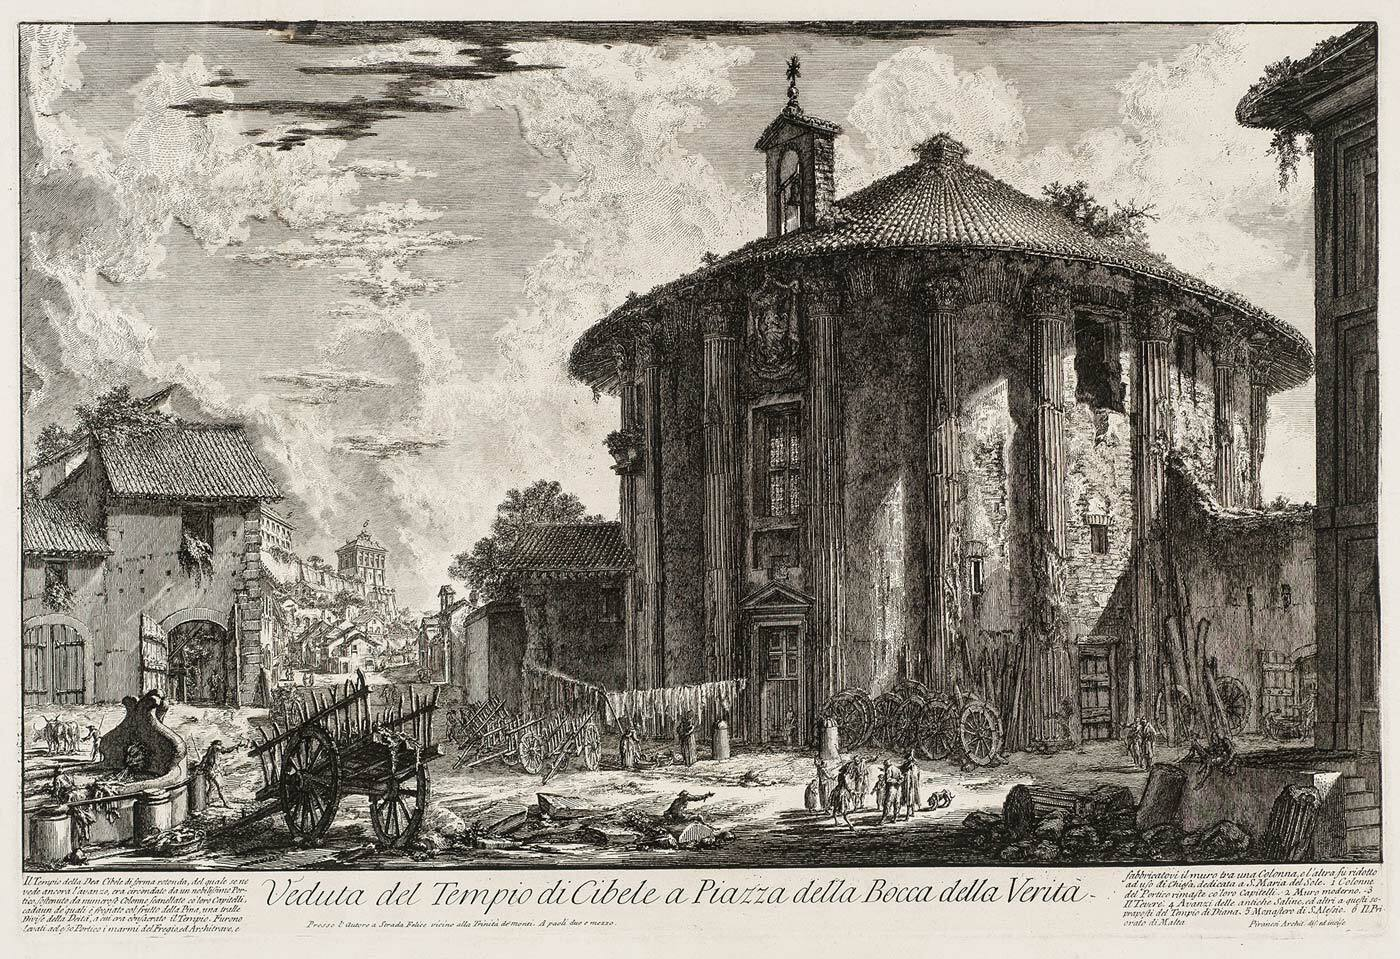 Veduta del Tempio de Cibele, Vedute di Roma by Piranesi (collection KABK Library)